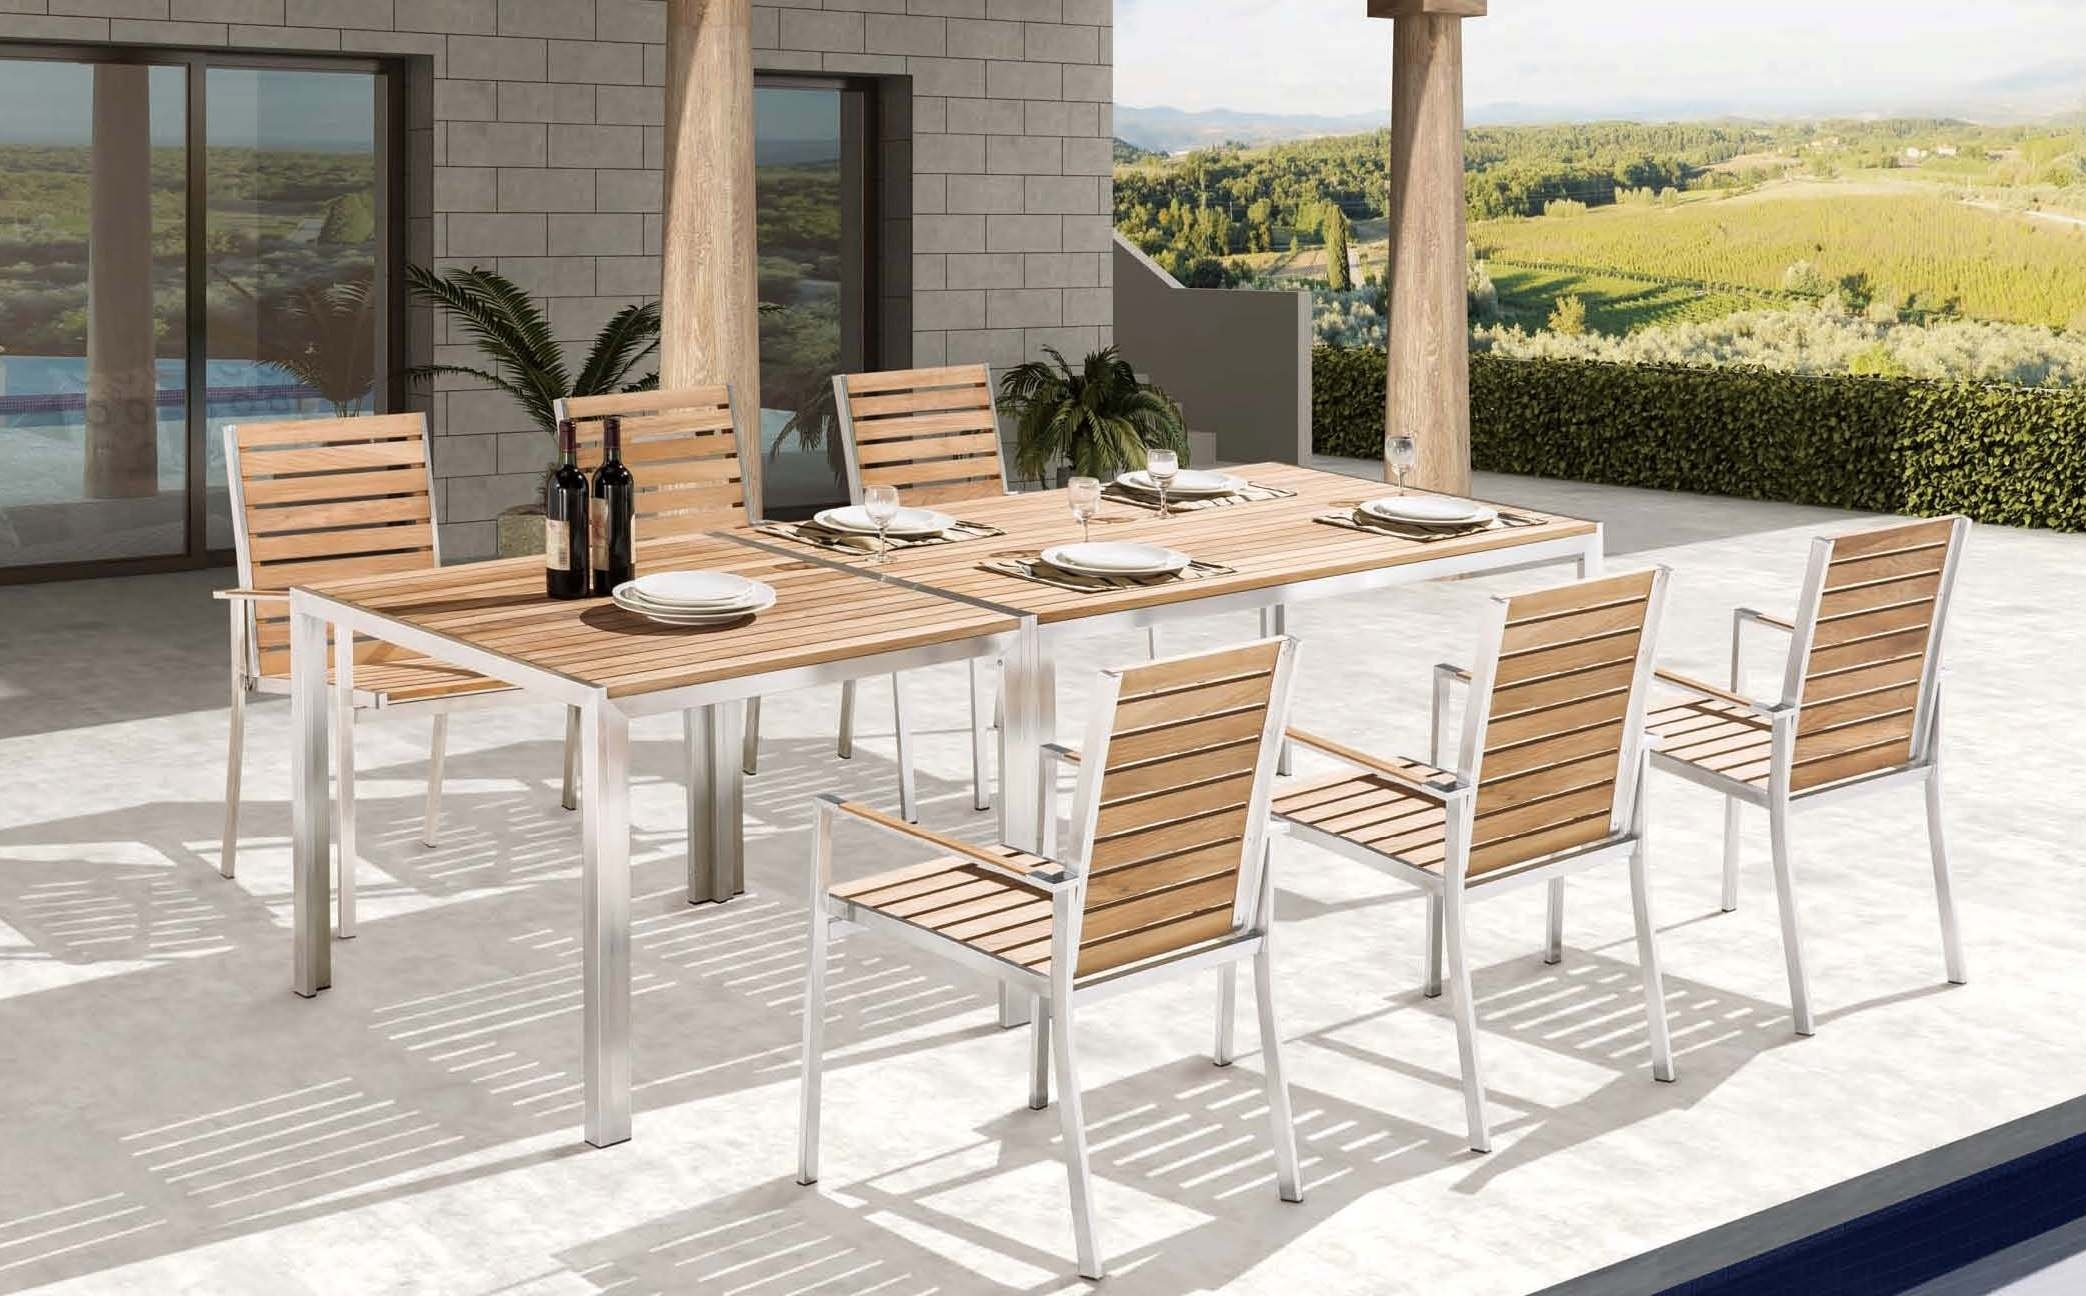 Image of: Outdoor Furnitureningbo Homey Union Coltd Regarding Outdoor Stainless Steel Furniture Great Outdoor Stainless Steel Furniture